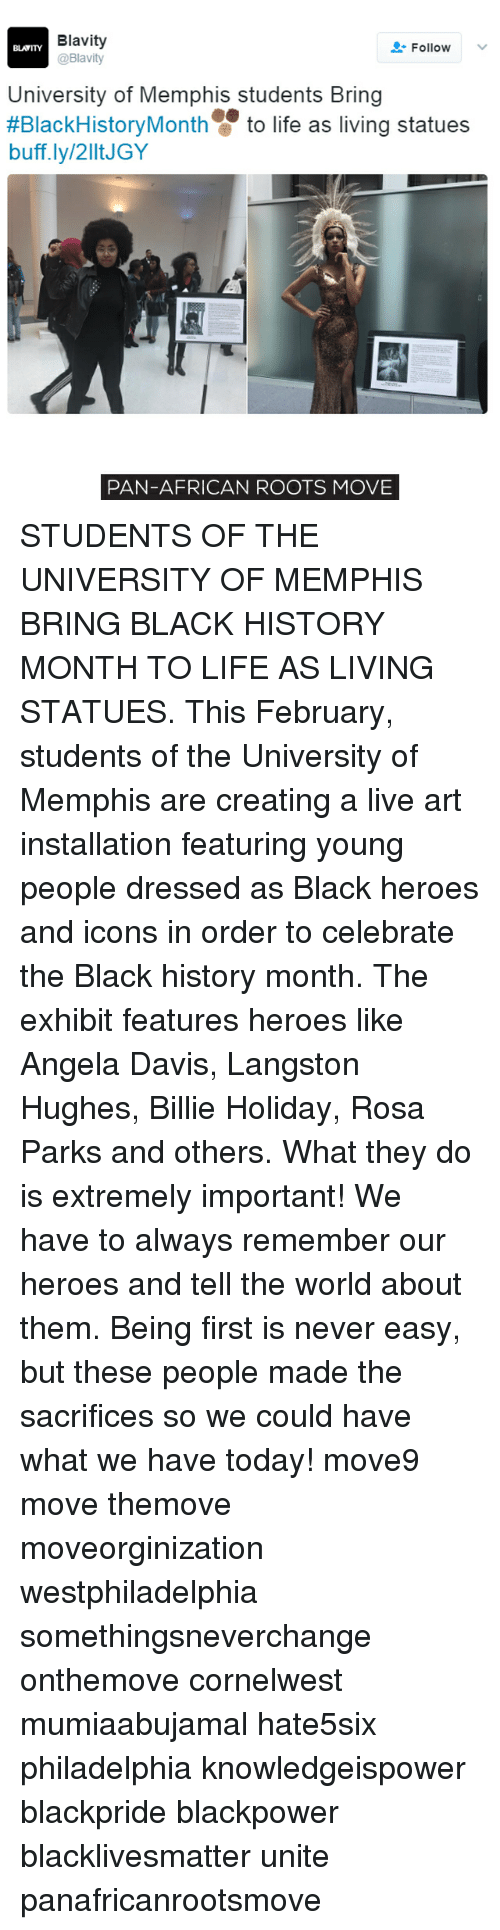 creat a: Blavity  Follow  BLATITY  @Blavity  University of Memphis students Bring  #BlackHistory Month to life as living statues  buff.ly/2lltJGY  PAN-AFRICAN ROOTS MOVE STUDENTS OF THE UNIVERSITY OF MEMPHIS BRING BLACK HISTORY MONTH TO LIFE AS LIVING STATUES. This February, students of the University of Memphis are creating a live art installation featuring young people dressed as Black heroes and icons in order to celebrate the Black history month. The exhibit features heroes like Angela Davis, Langston Hughes, Billie Holiday, Rosa Parks and others. What they do is extremely important! We have to always remember our heroes and tell the world about them. Being first is never easy, but these people made the sacrifices so we could have what we have today! move9 move themove moveorginization westphiladelphia somethingsneverchange onthemove cornelwest mumiaabujamal hate5six philadelphia knowledgeispower blackpride blackpower blacklivesmatter unite panafricanrootsmove